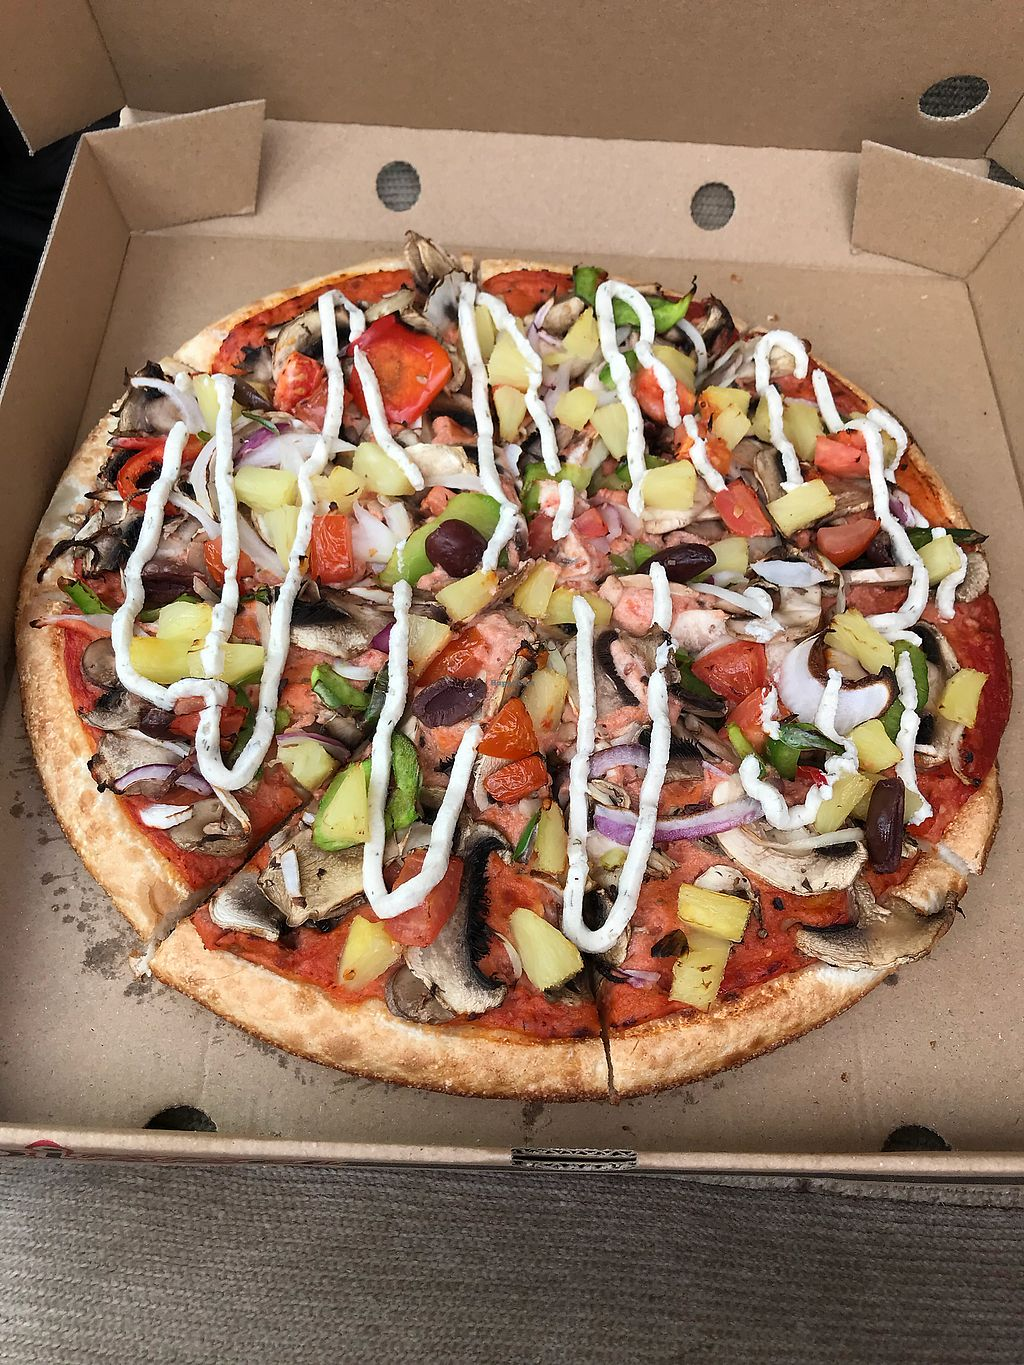 "Photo of Riptide Pizza  by <a href=""/members/profile/NirvanaRoseWilliams"">NirvanaRoseWilliams</a> <br/>Veggie pizza with cashew cheese <br/> February 2, 2018  - <a href='/contact/abuse/image/91765/353858'>Report</a>"